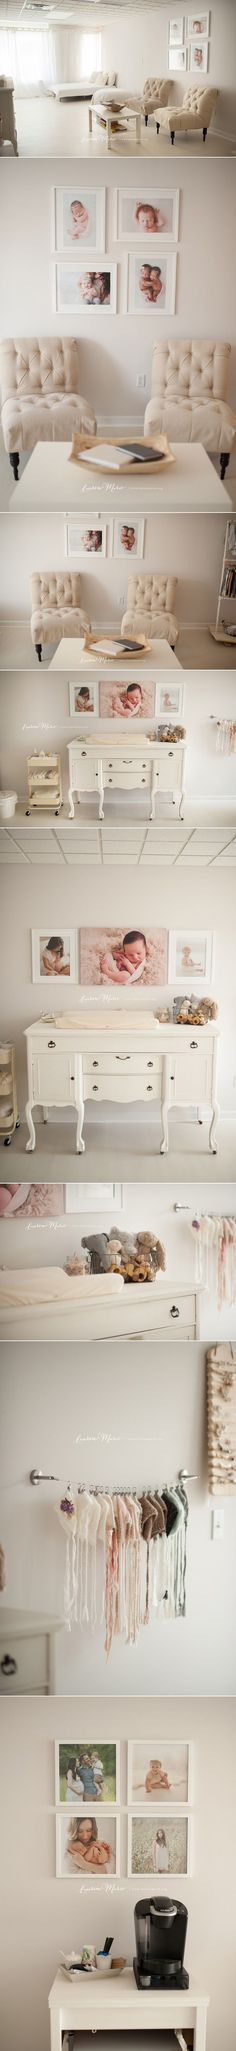 Lauren Marie Photography Portrait Studio for Newborns, Babies, Maternity, and Families in Southeast Michigan. Studio is located in Downtown Fenton, MI.115 N River St Fenton, MI 48430Appointment Required